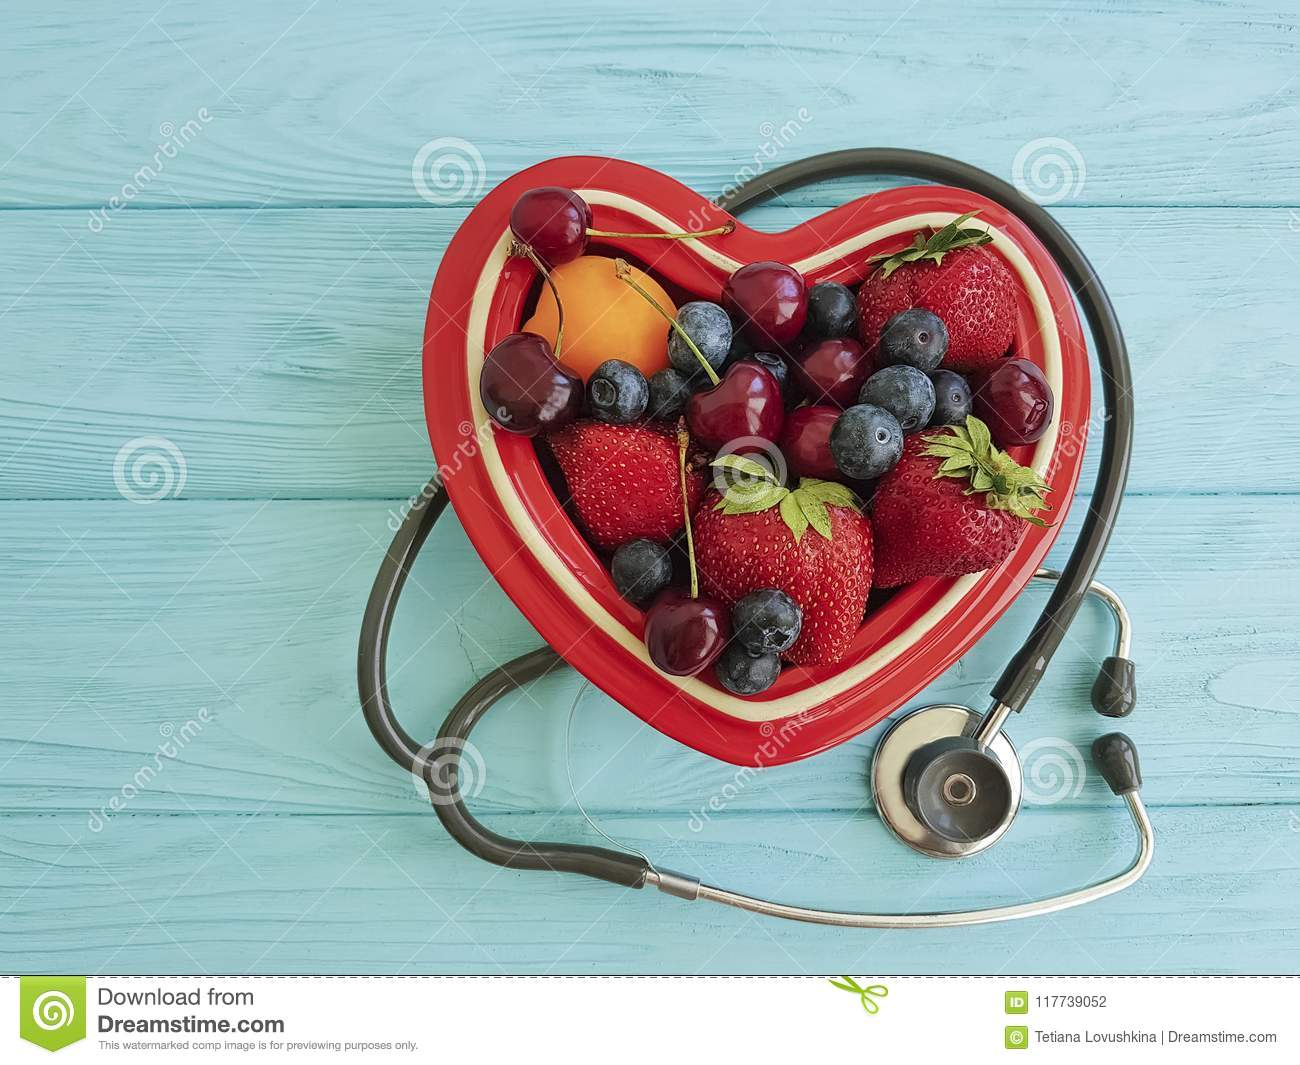 Fruit strawberry, blueberry, cherry, apricot plate heart on blue wooden stethoscope sweet antioxidant mixed